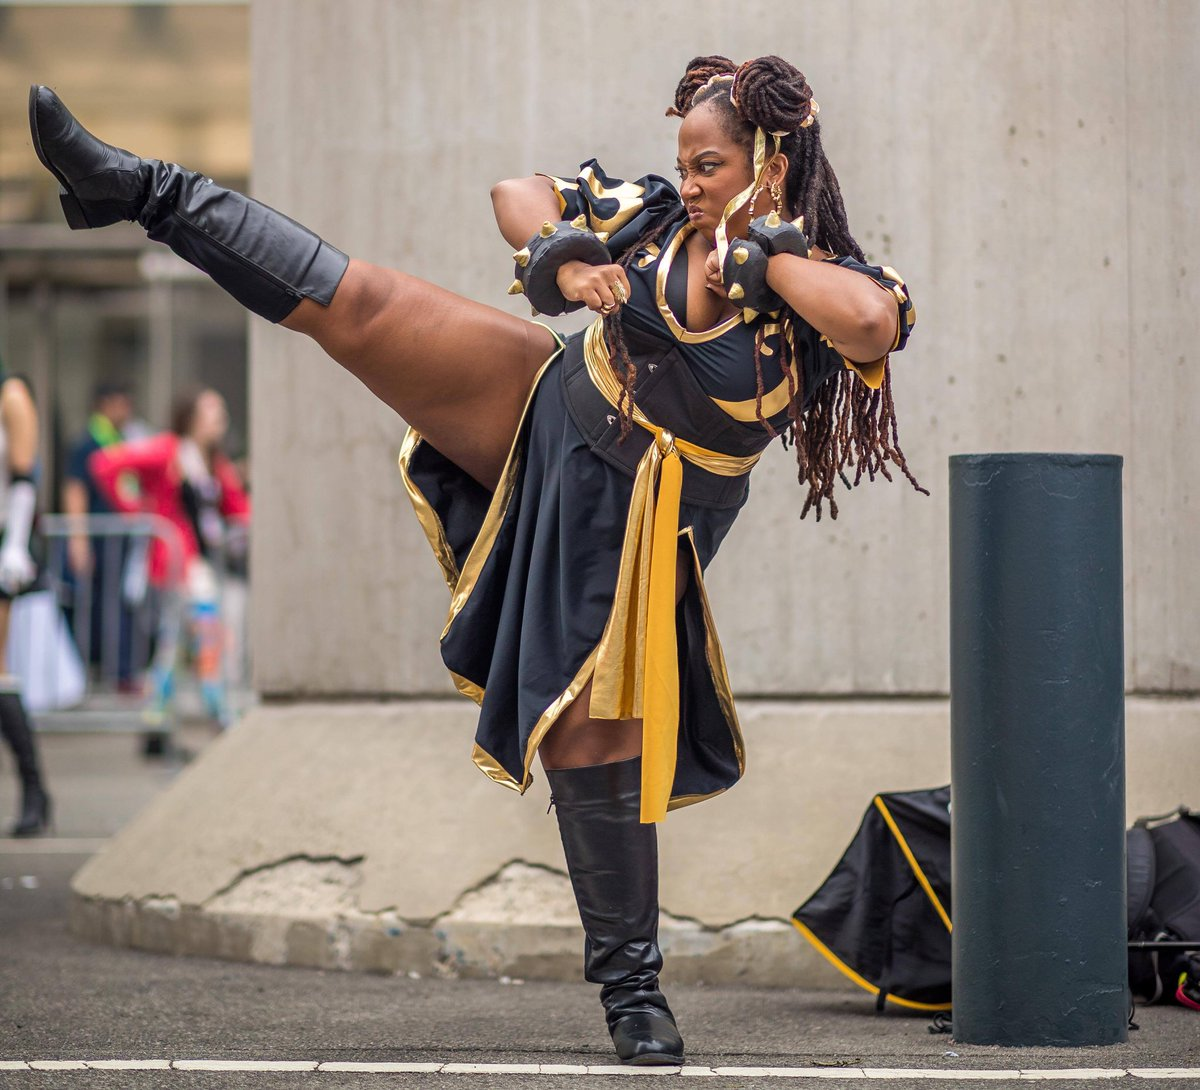 Day 25 of #28DaysofBlackCosplay is @sailorxtasy as Chun-Li from Street Fighter! Please go and support her! She's wonderful!